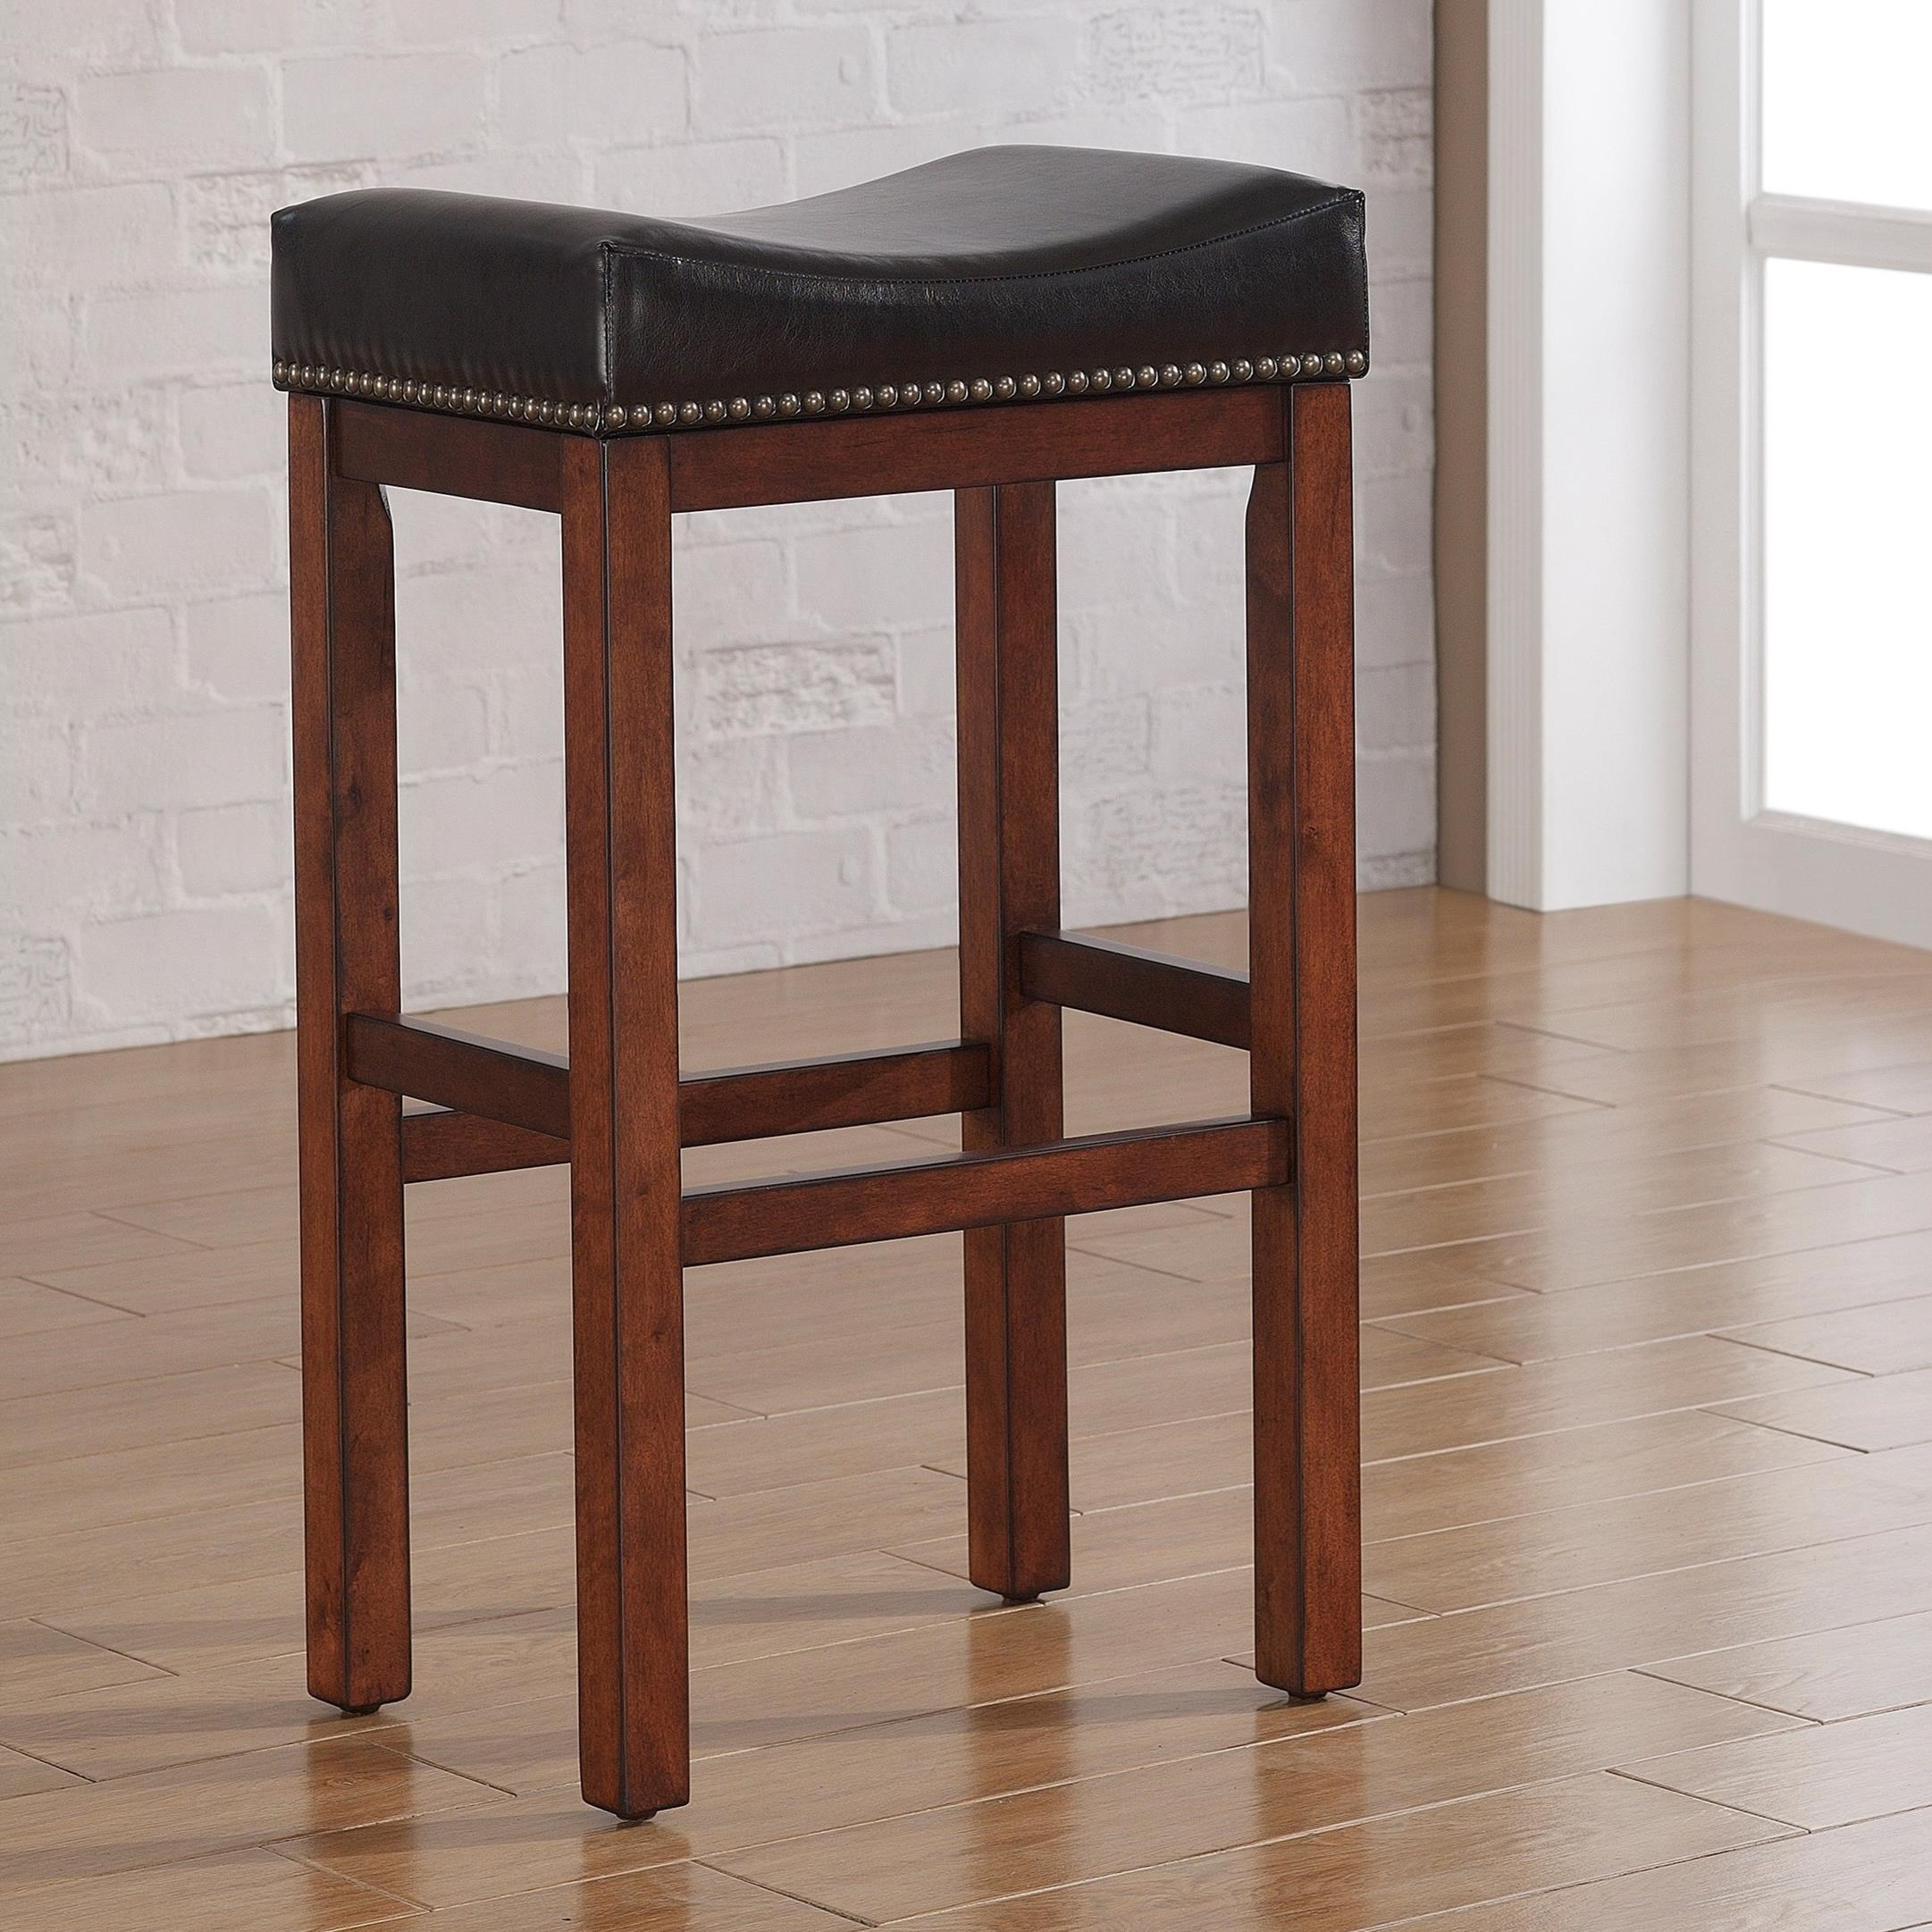 American Woodcrafters Barstools Backless Wood Stool - Item Number: B2-203-26L